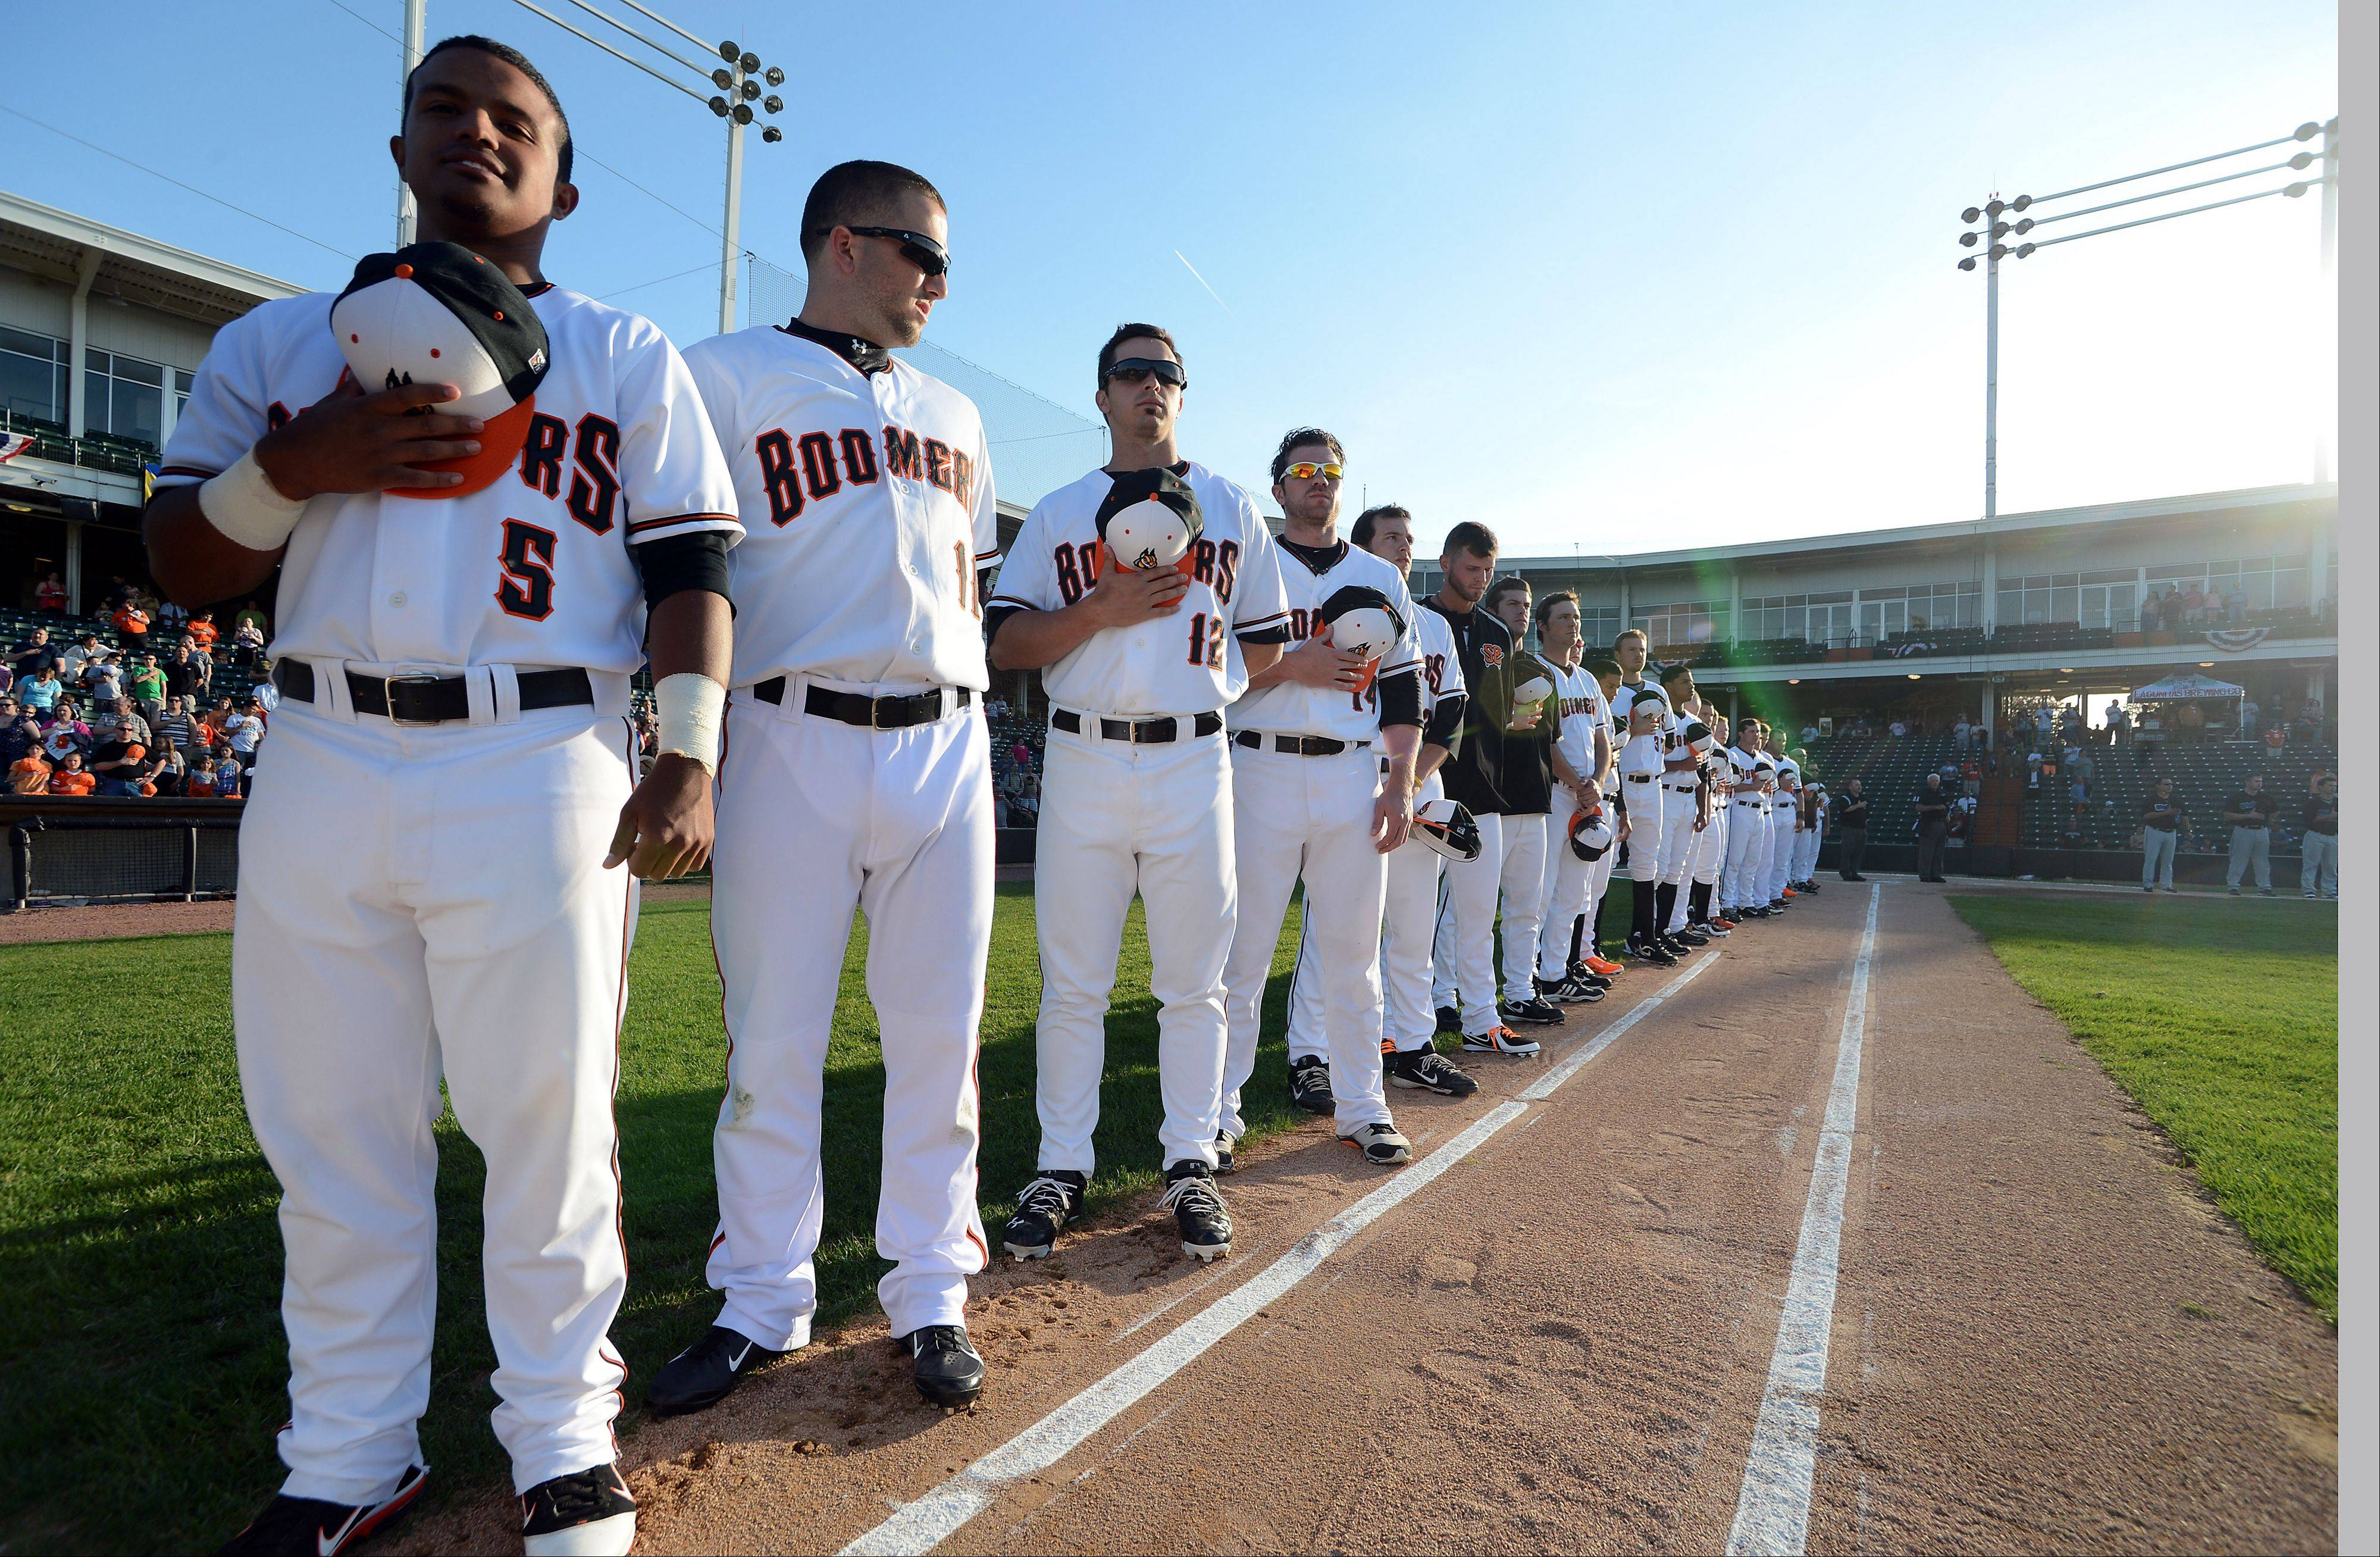 The Schaumburg Boomers take the field in their Opening Day game against the Windy City Thunderbolts on Thursday.